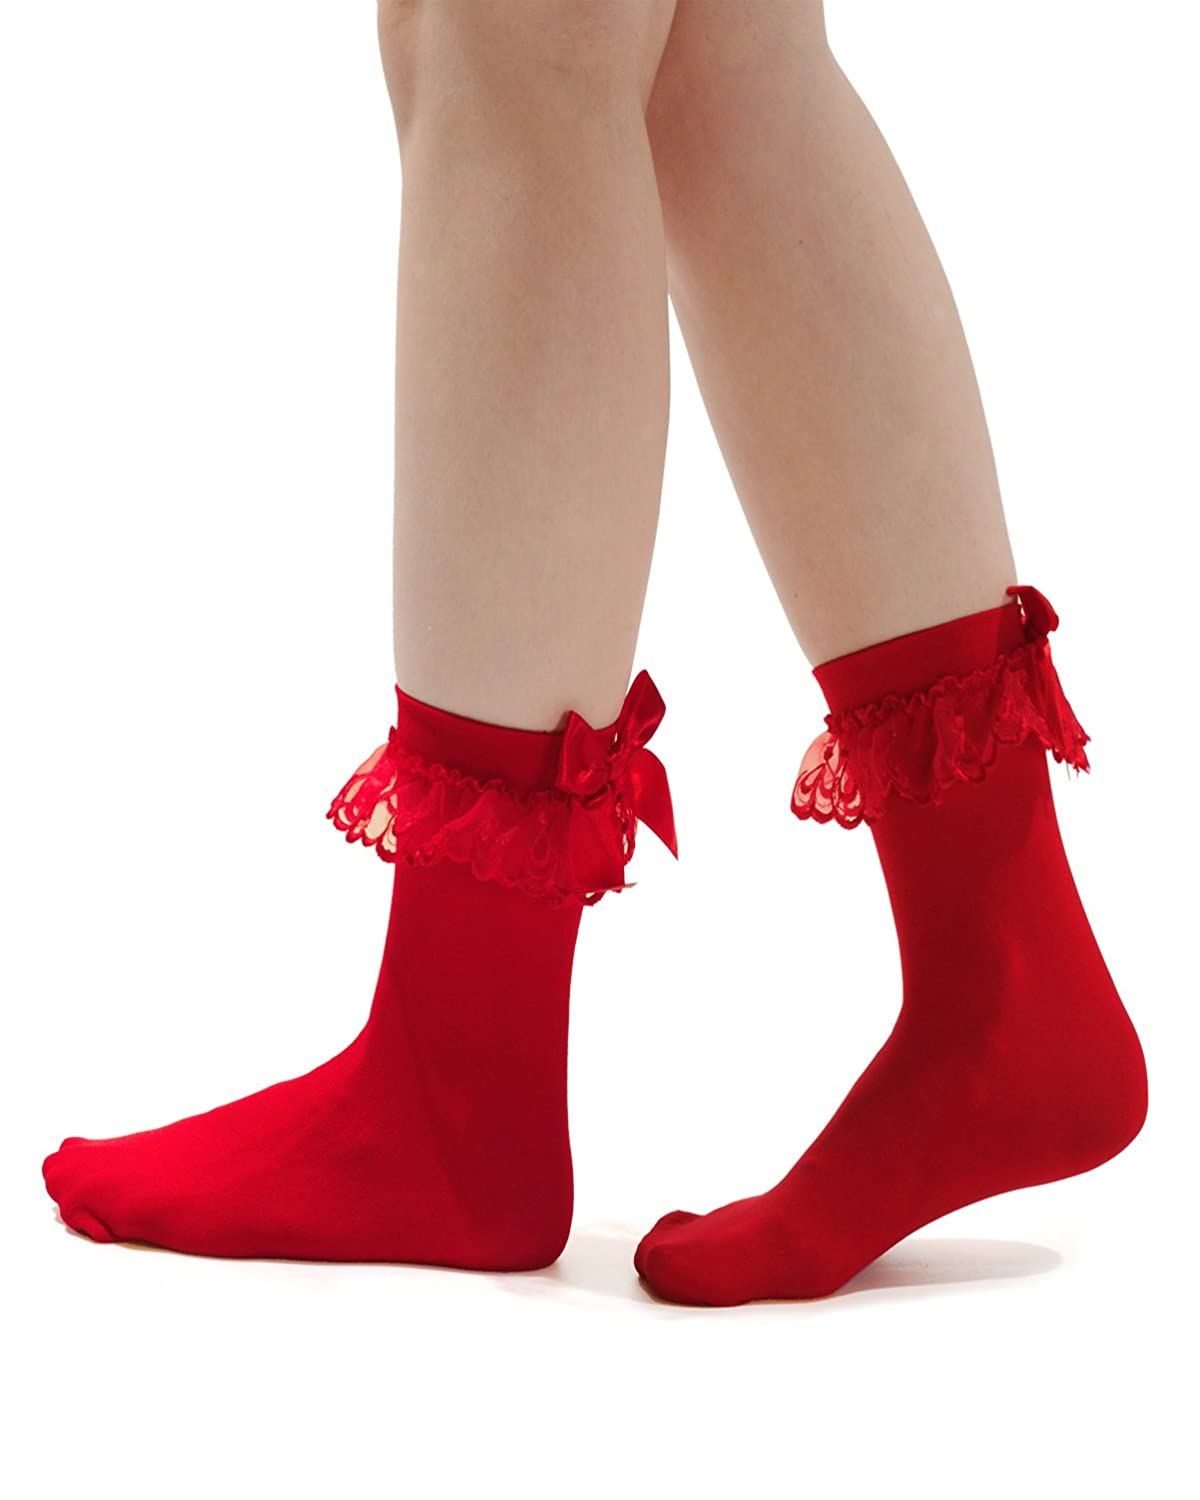 Vintage Socks | 1920s, 1930s, 1940s, 1950s, 1960s History Anklet Socks Ruffled Bow 4 Color Options Red Pink Black White $7.49 AT vintagedancer.com